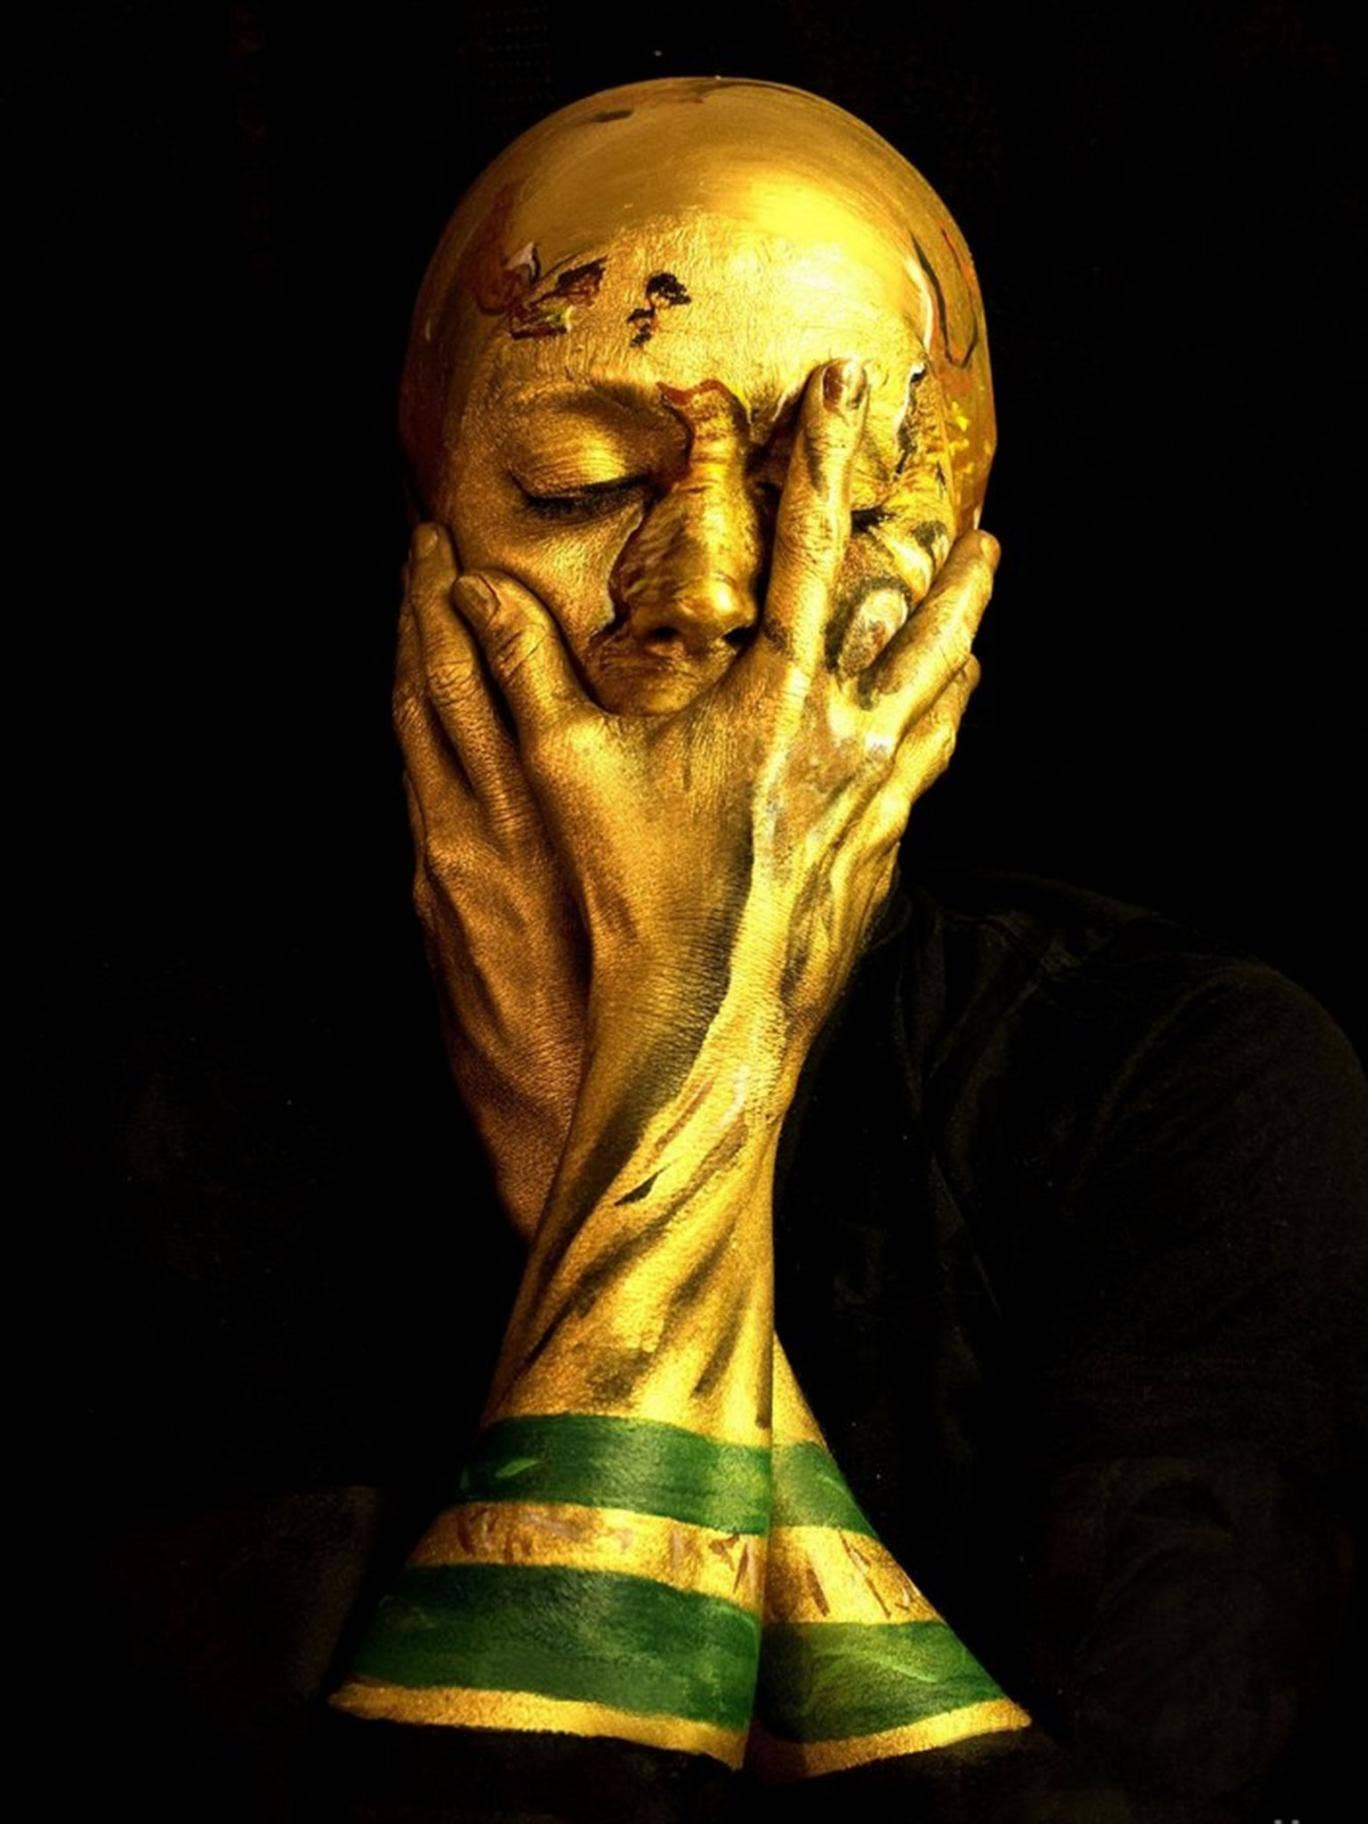 London artist Emma Allen has painted herself as the World Cup